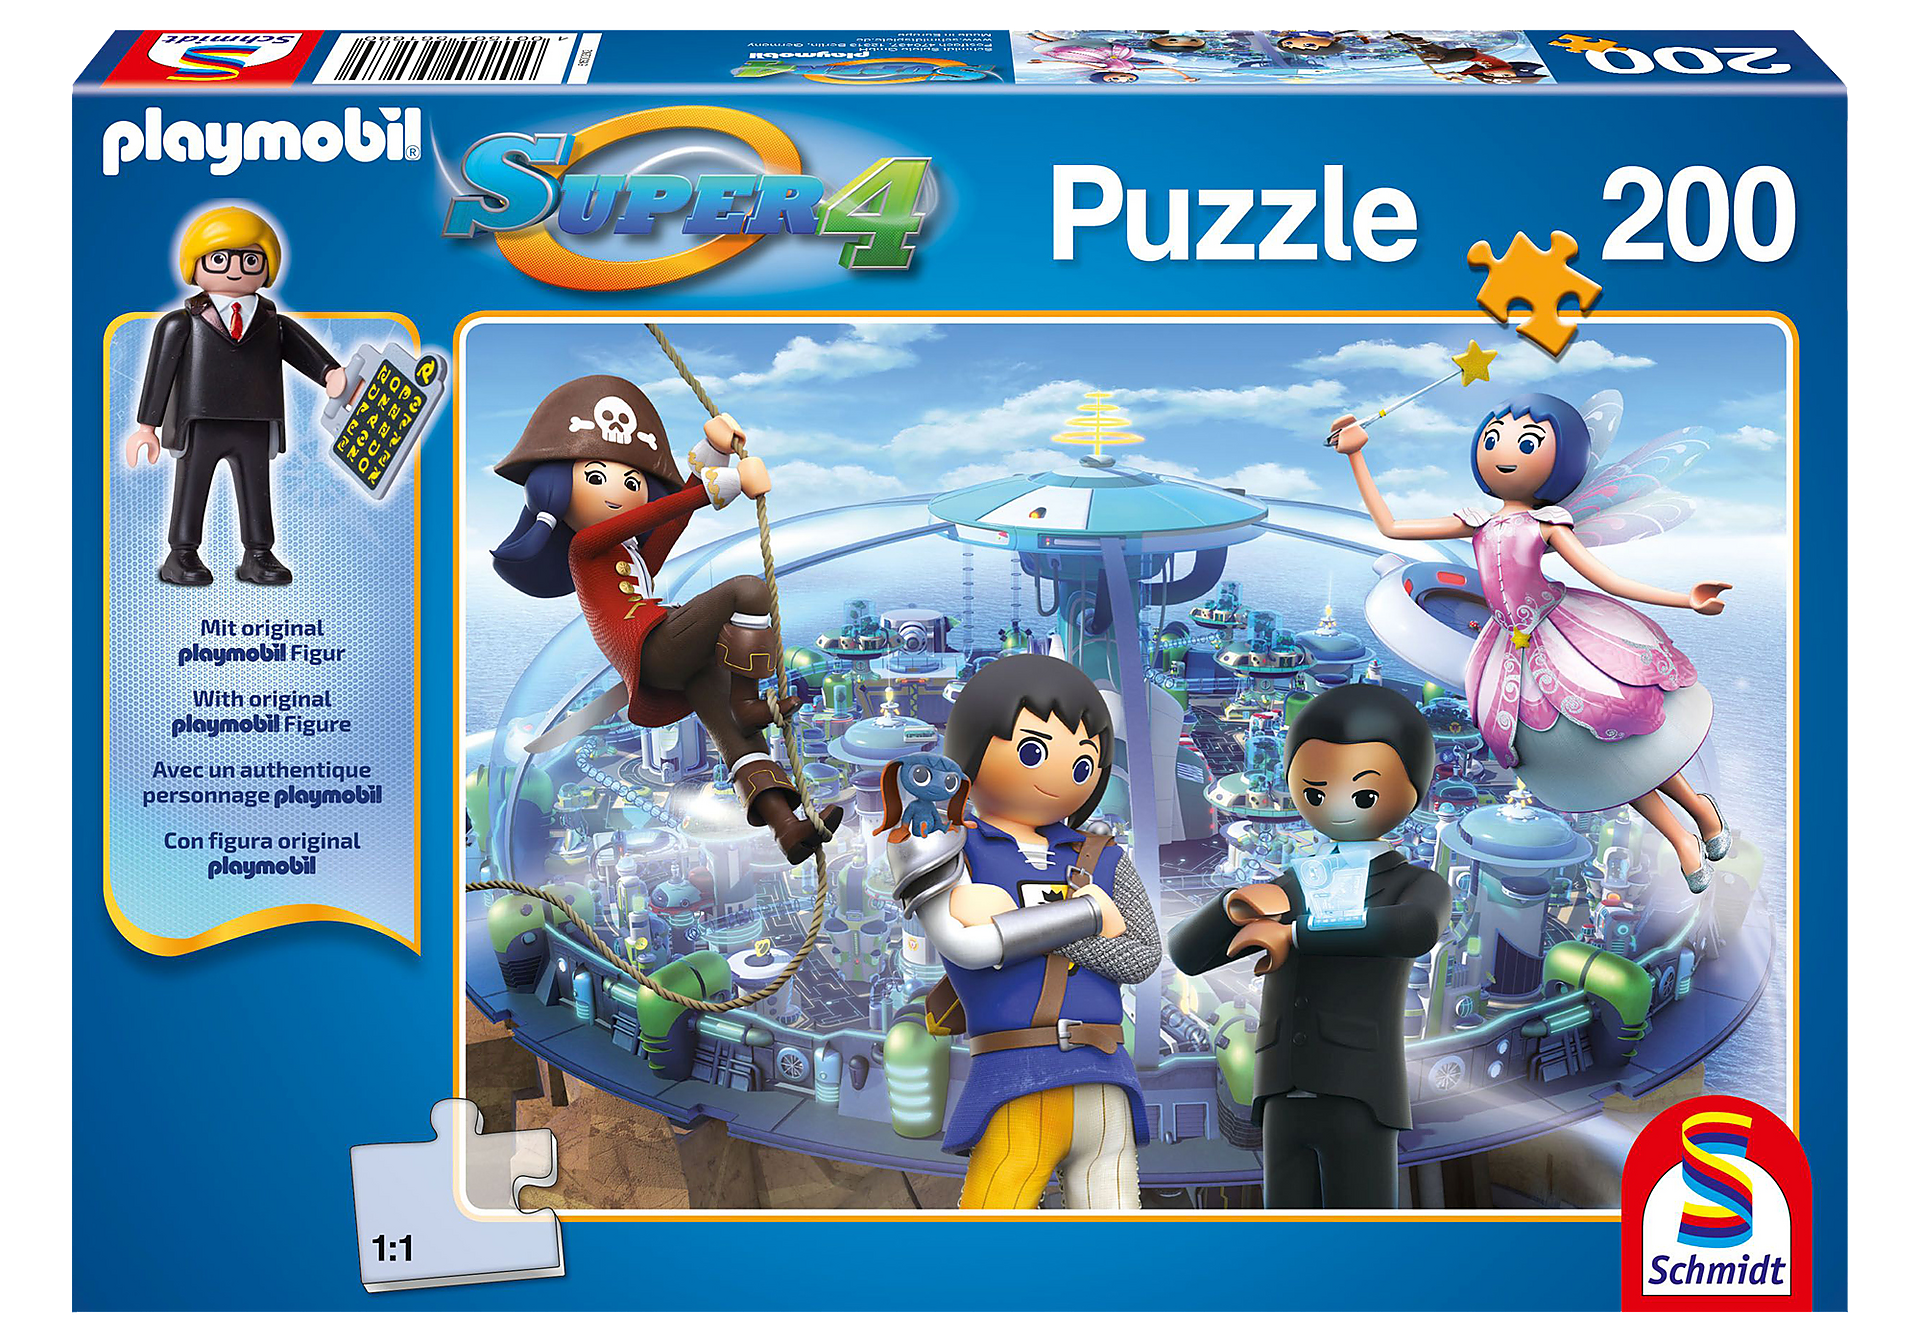 http://media.playmobil.com/i/playmobil/80709_product_detail/Puzzle Super4 - Technopolis